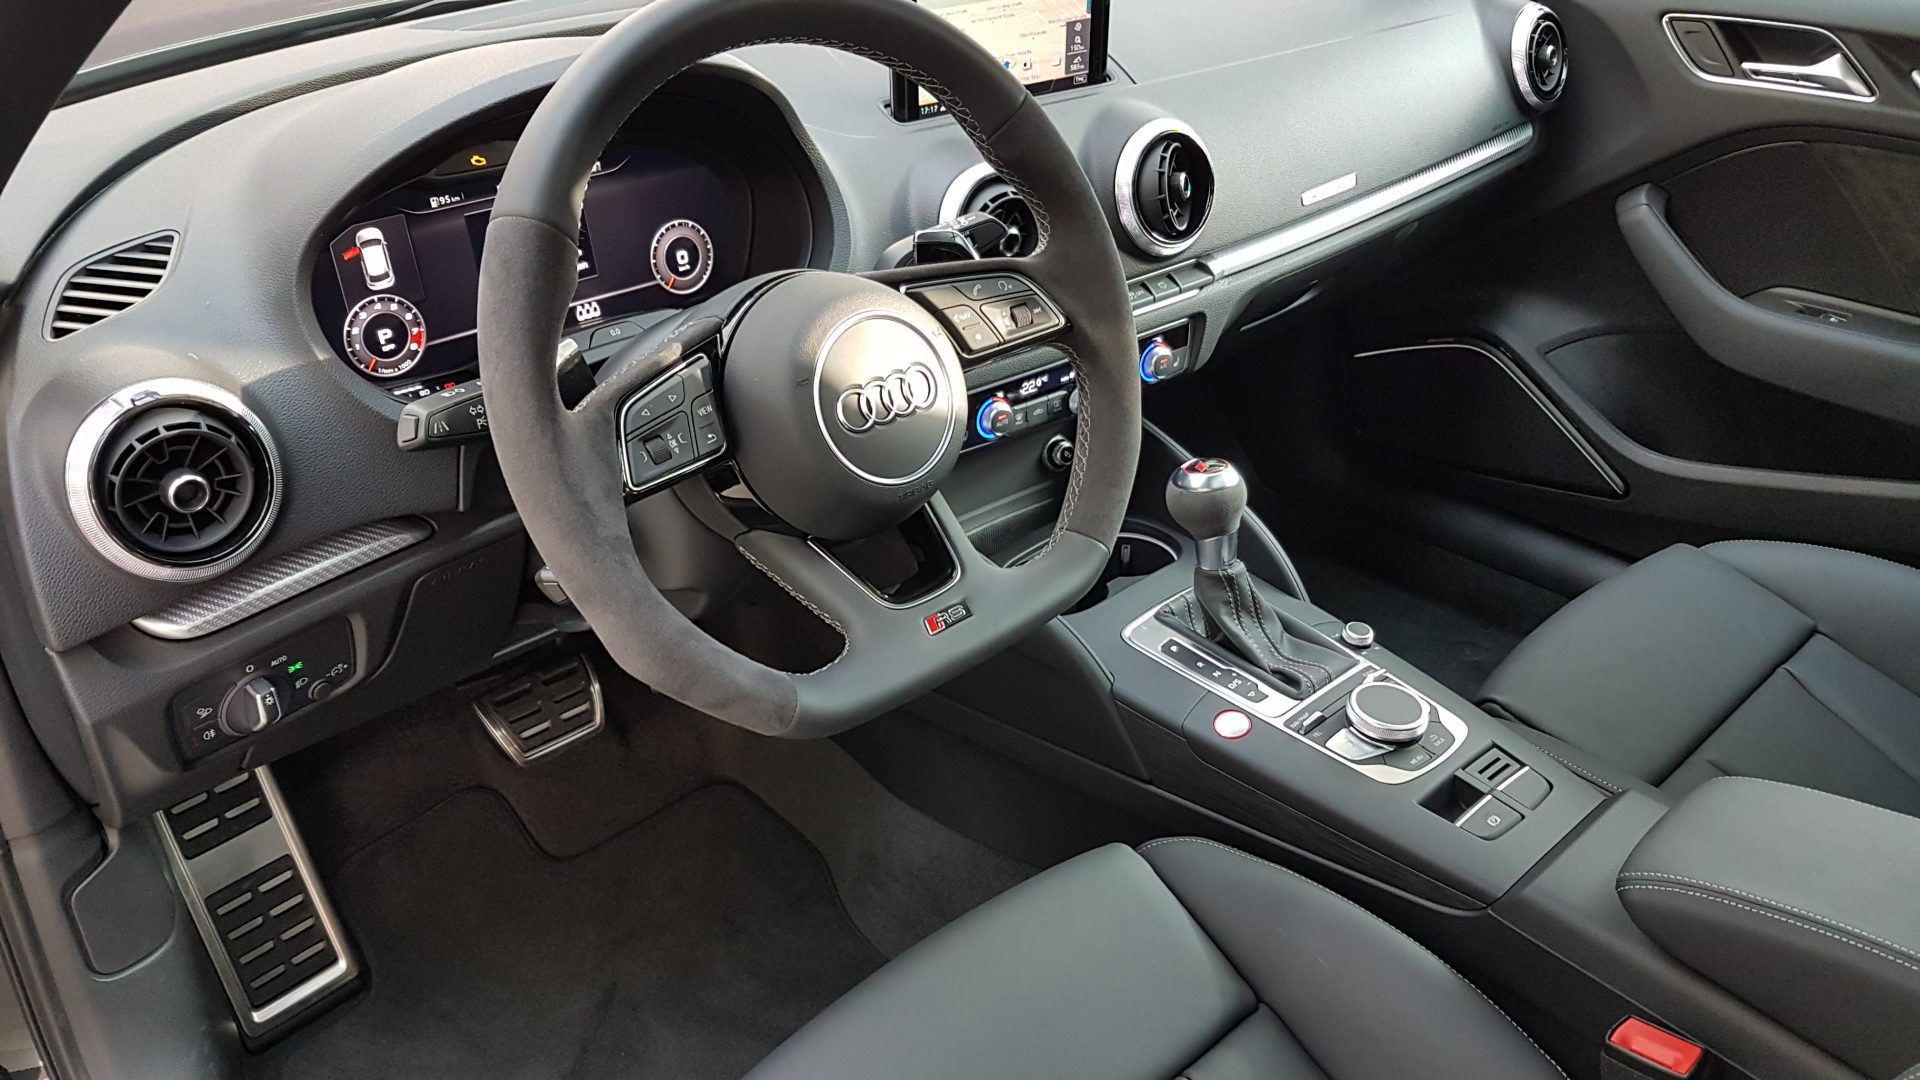 AIL Audi RS3 Sportback Matrix Panorama Virtual Cockpit 7